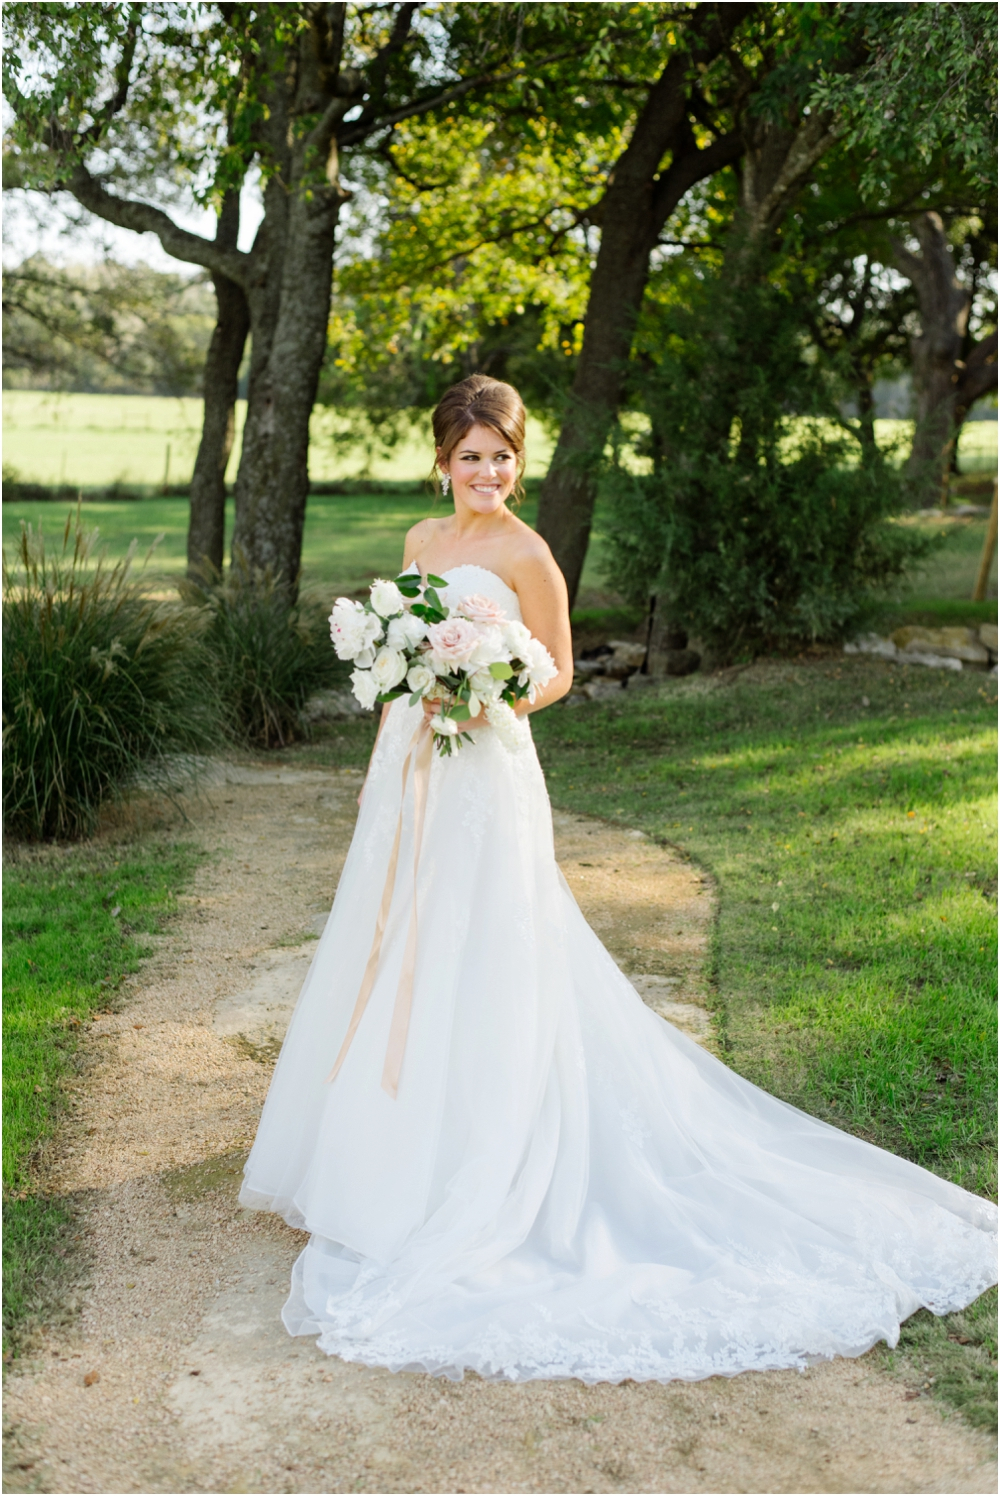 dallasweddingphotographer_texasweddingphotographer_texasweddingphotographers_dallasweddingphotographer_mattandjulieweddings_0607.jpg